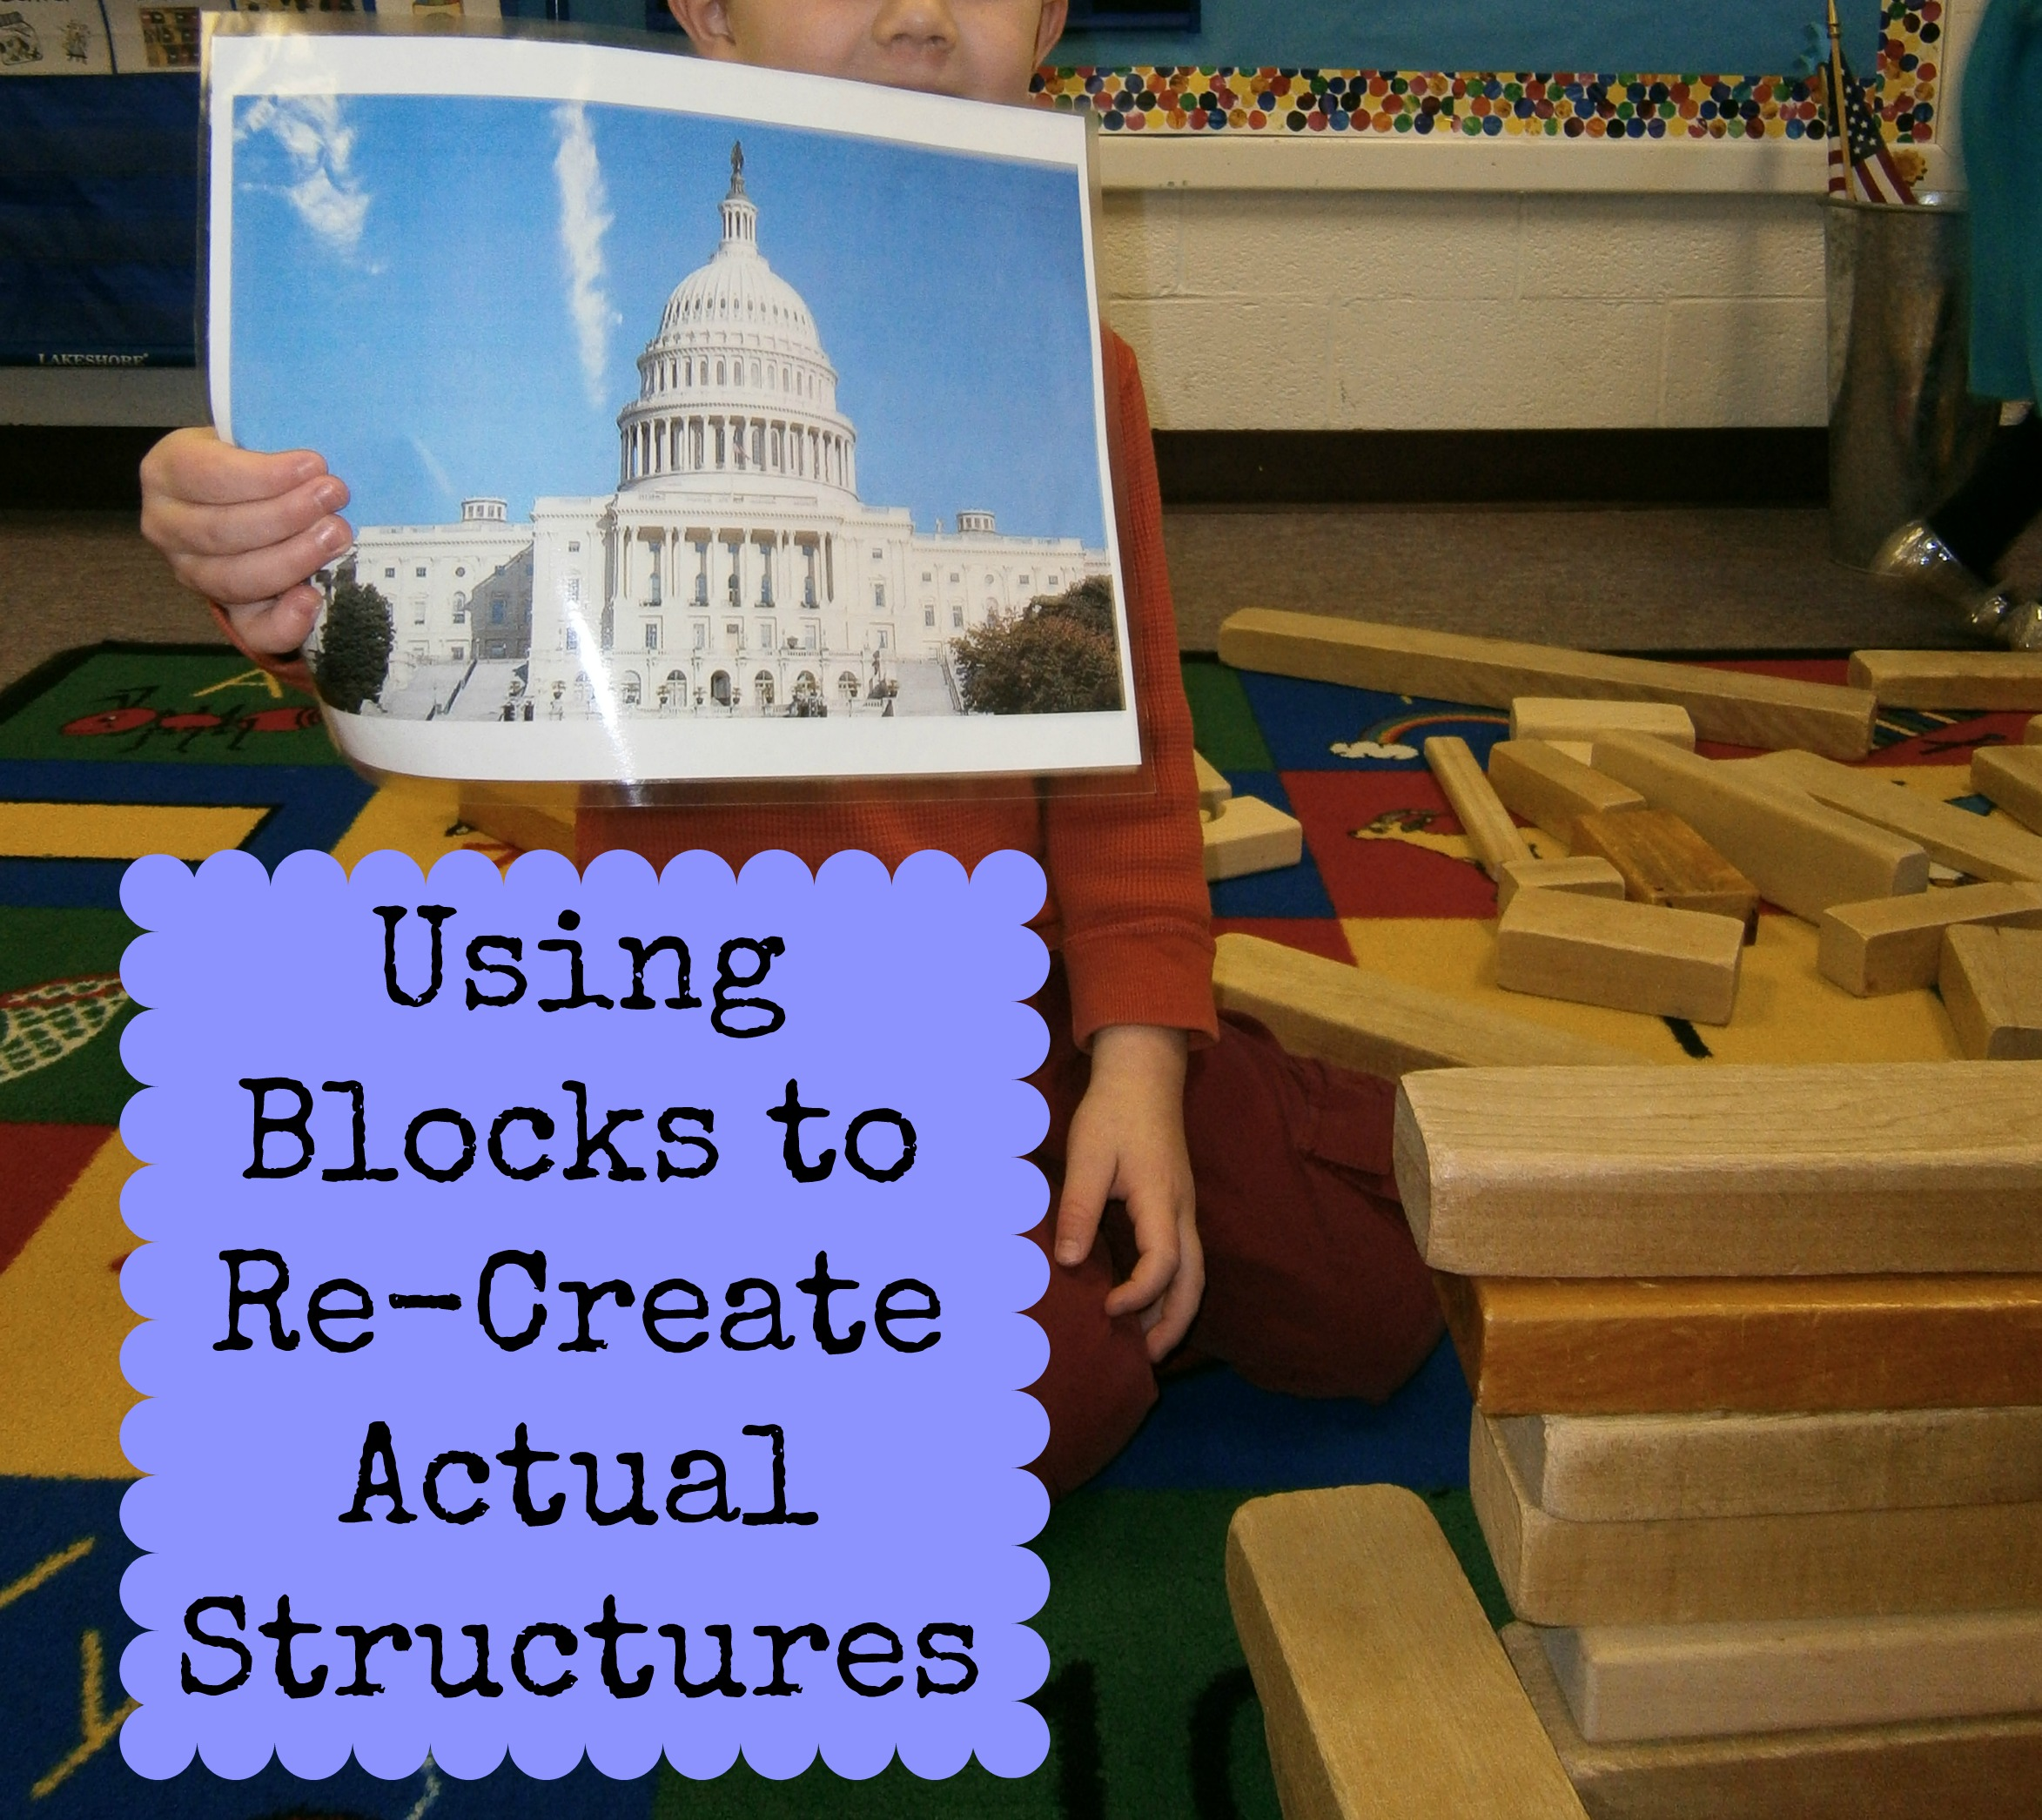 Recreating Real Structures With Blocks